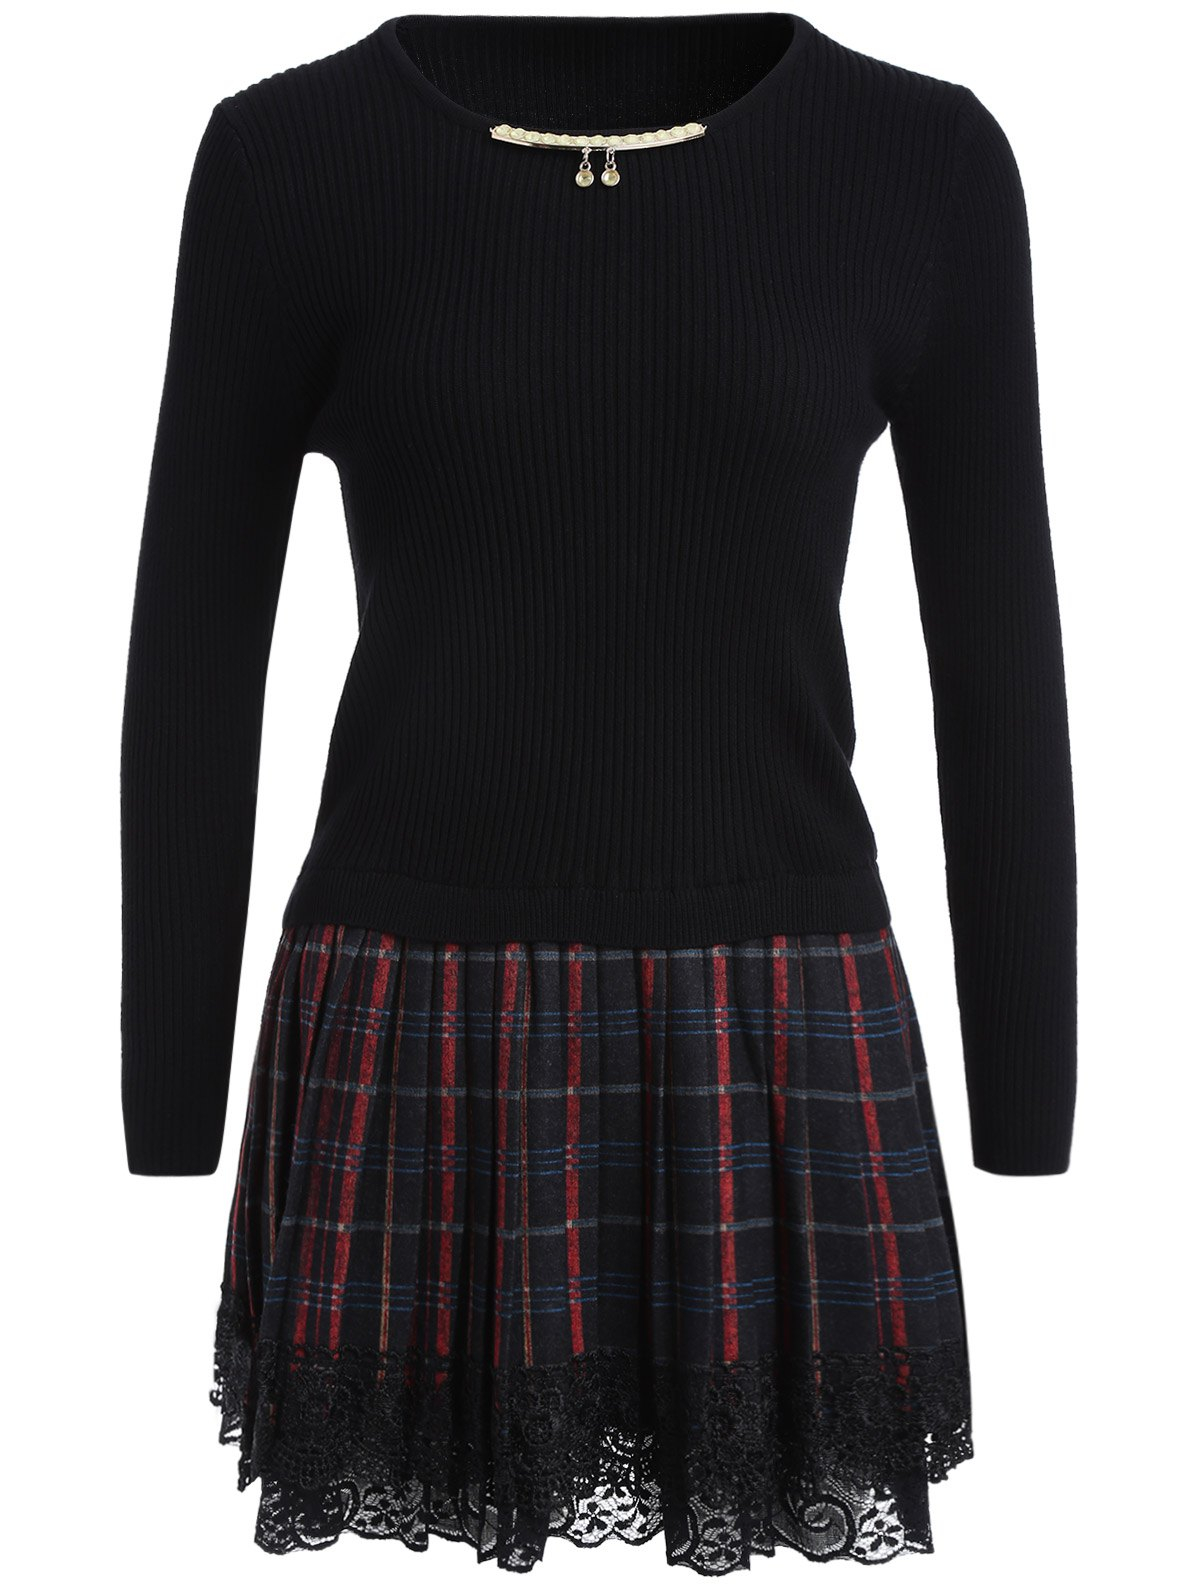 Chain Checked Layered Sweater Skater Dress - BLACK ONE SIZE